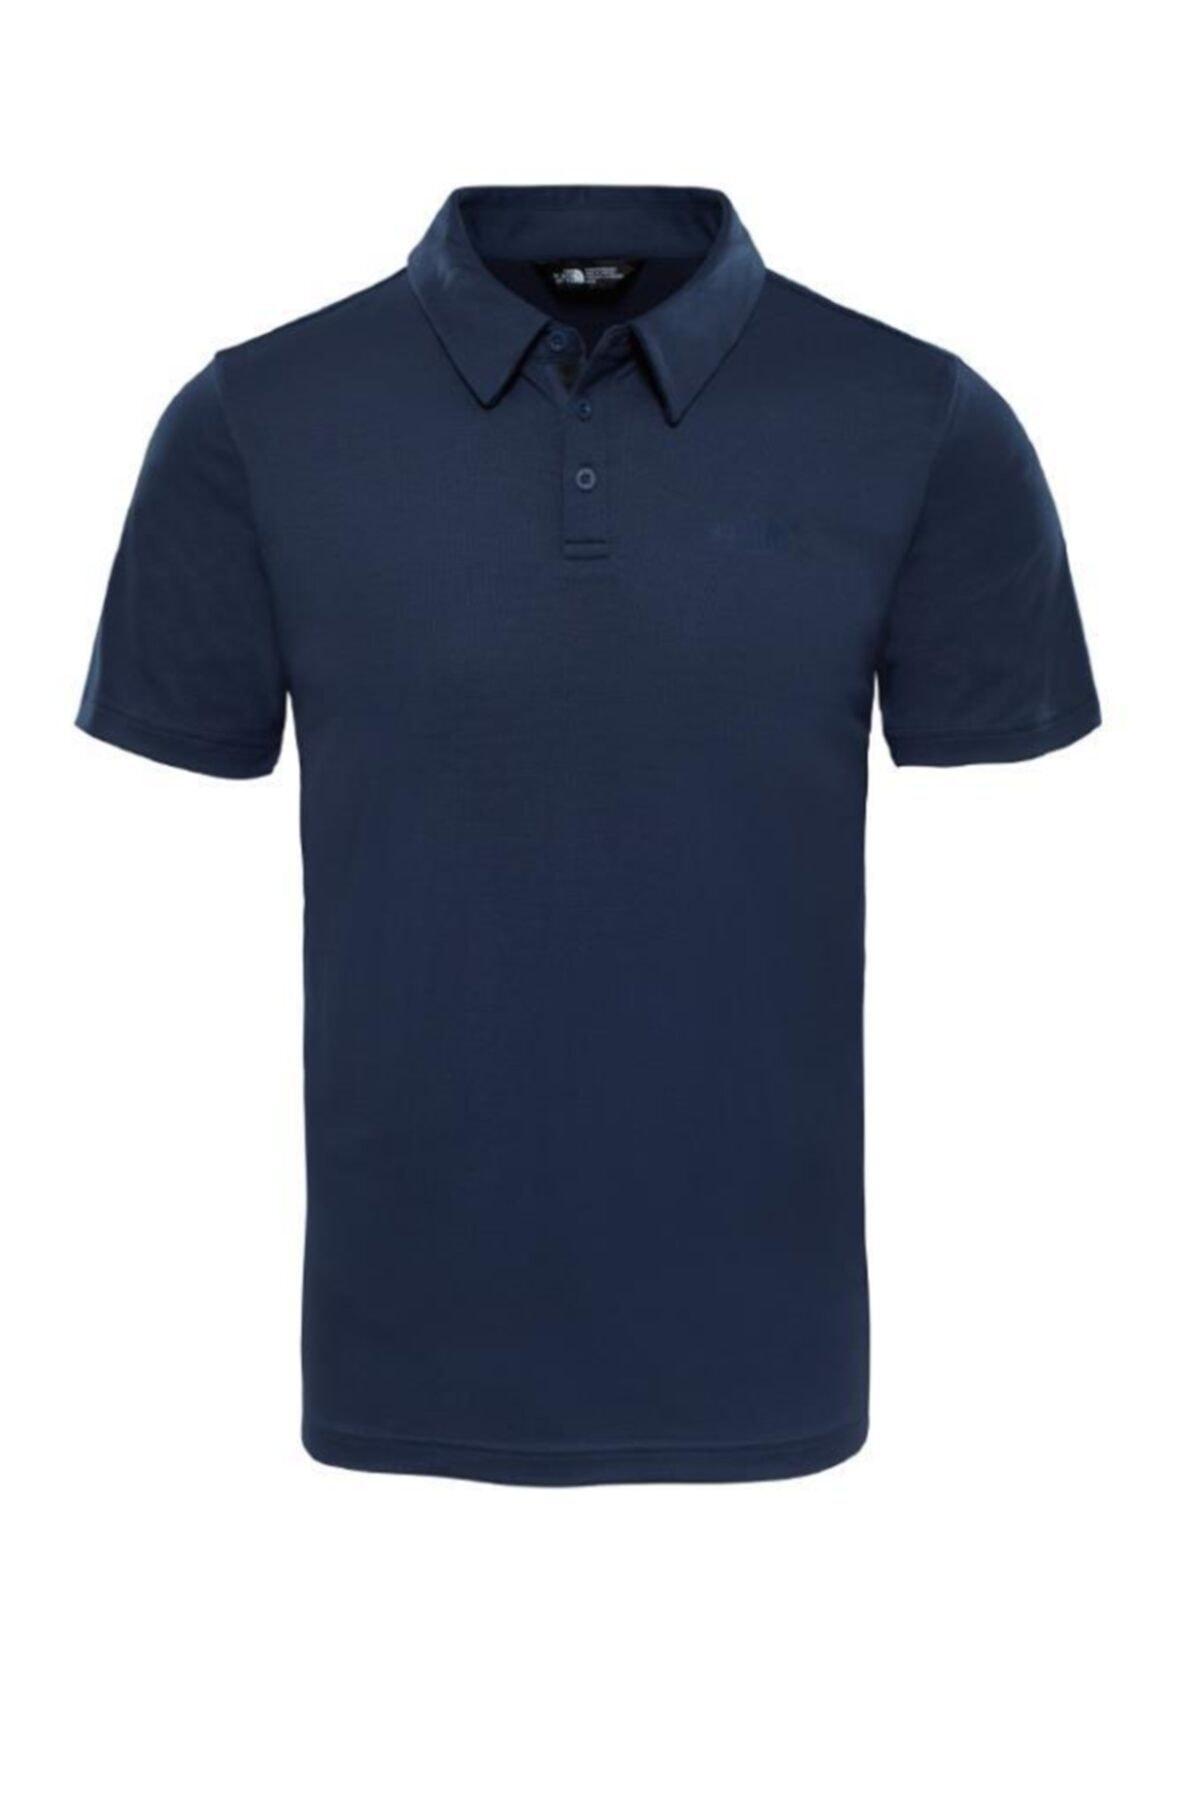 THE NORTH FACE Tanken Polo T-shirt - Lacivert (Nf0a2wazh2g) 1